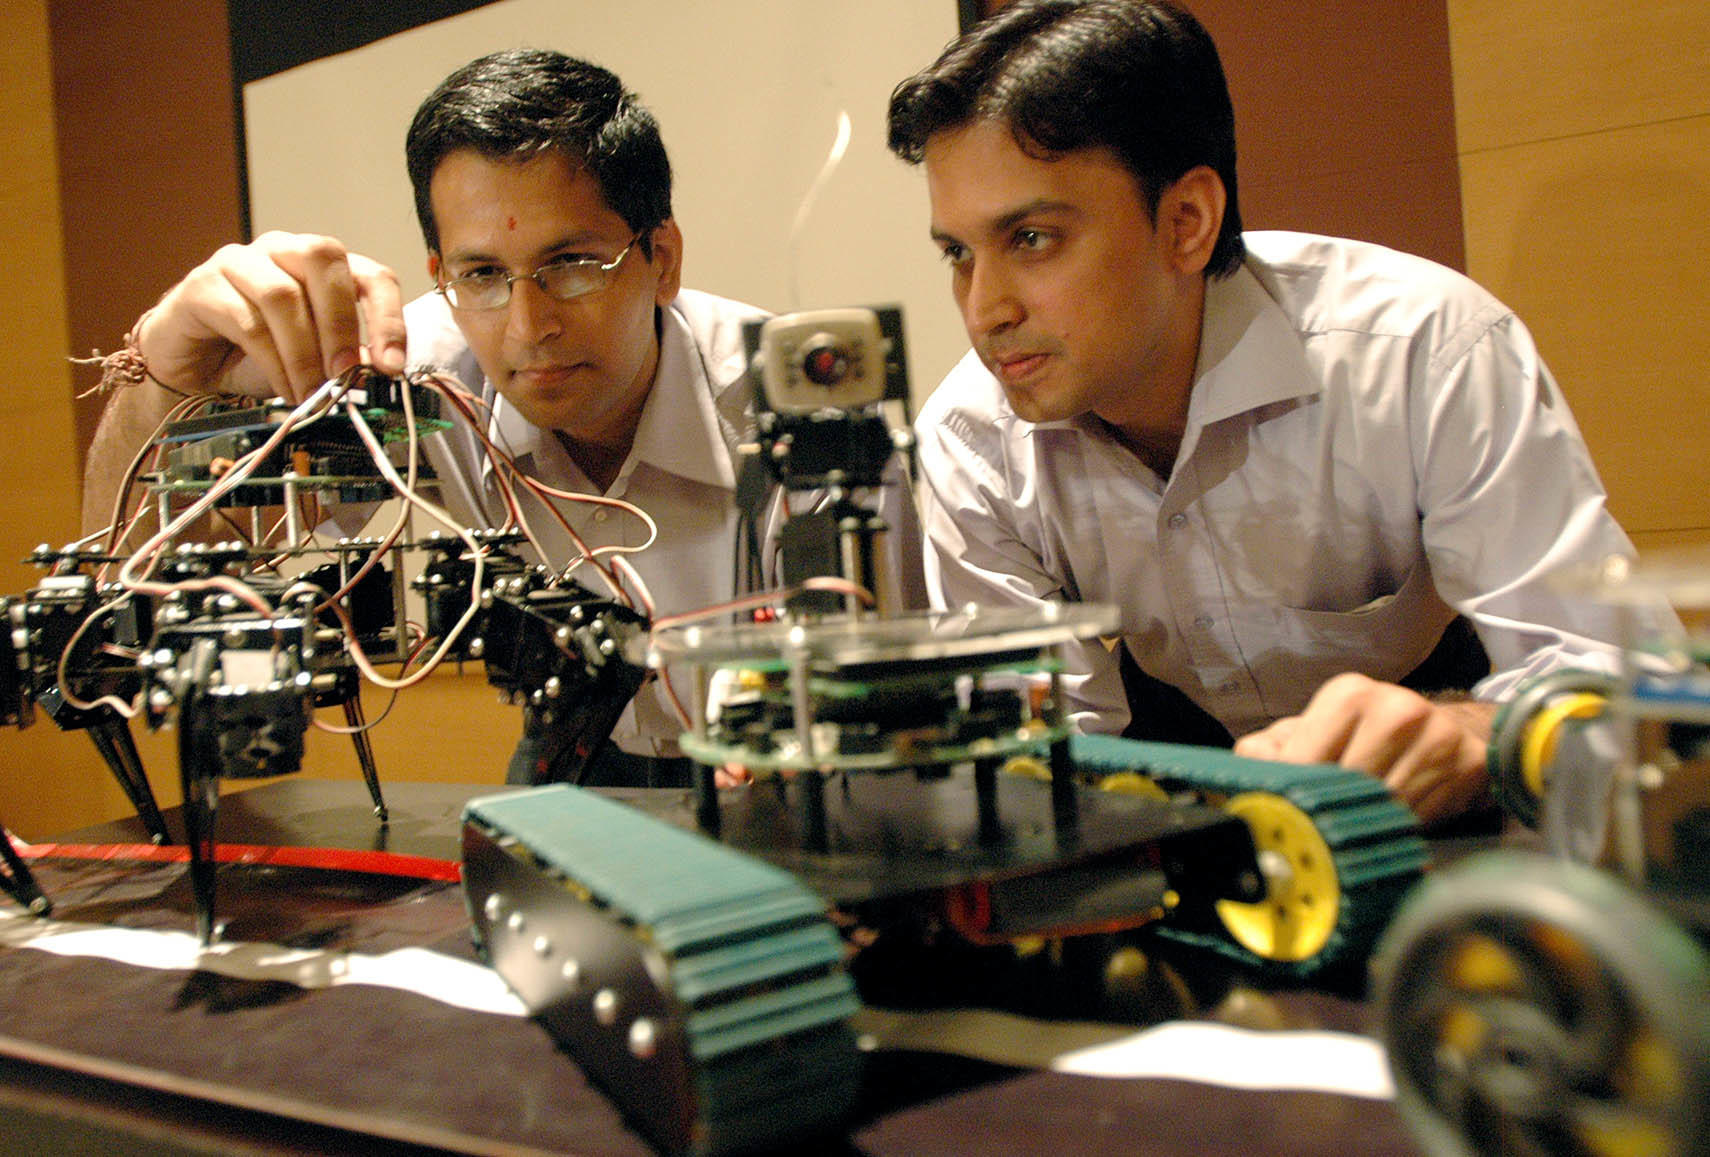 Portal Exclusive: Here is the list of skills students should have to succeed in Industry 4.0